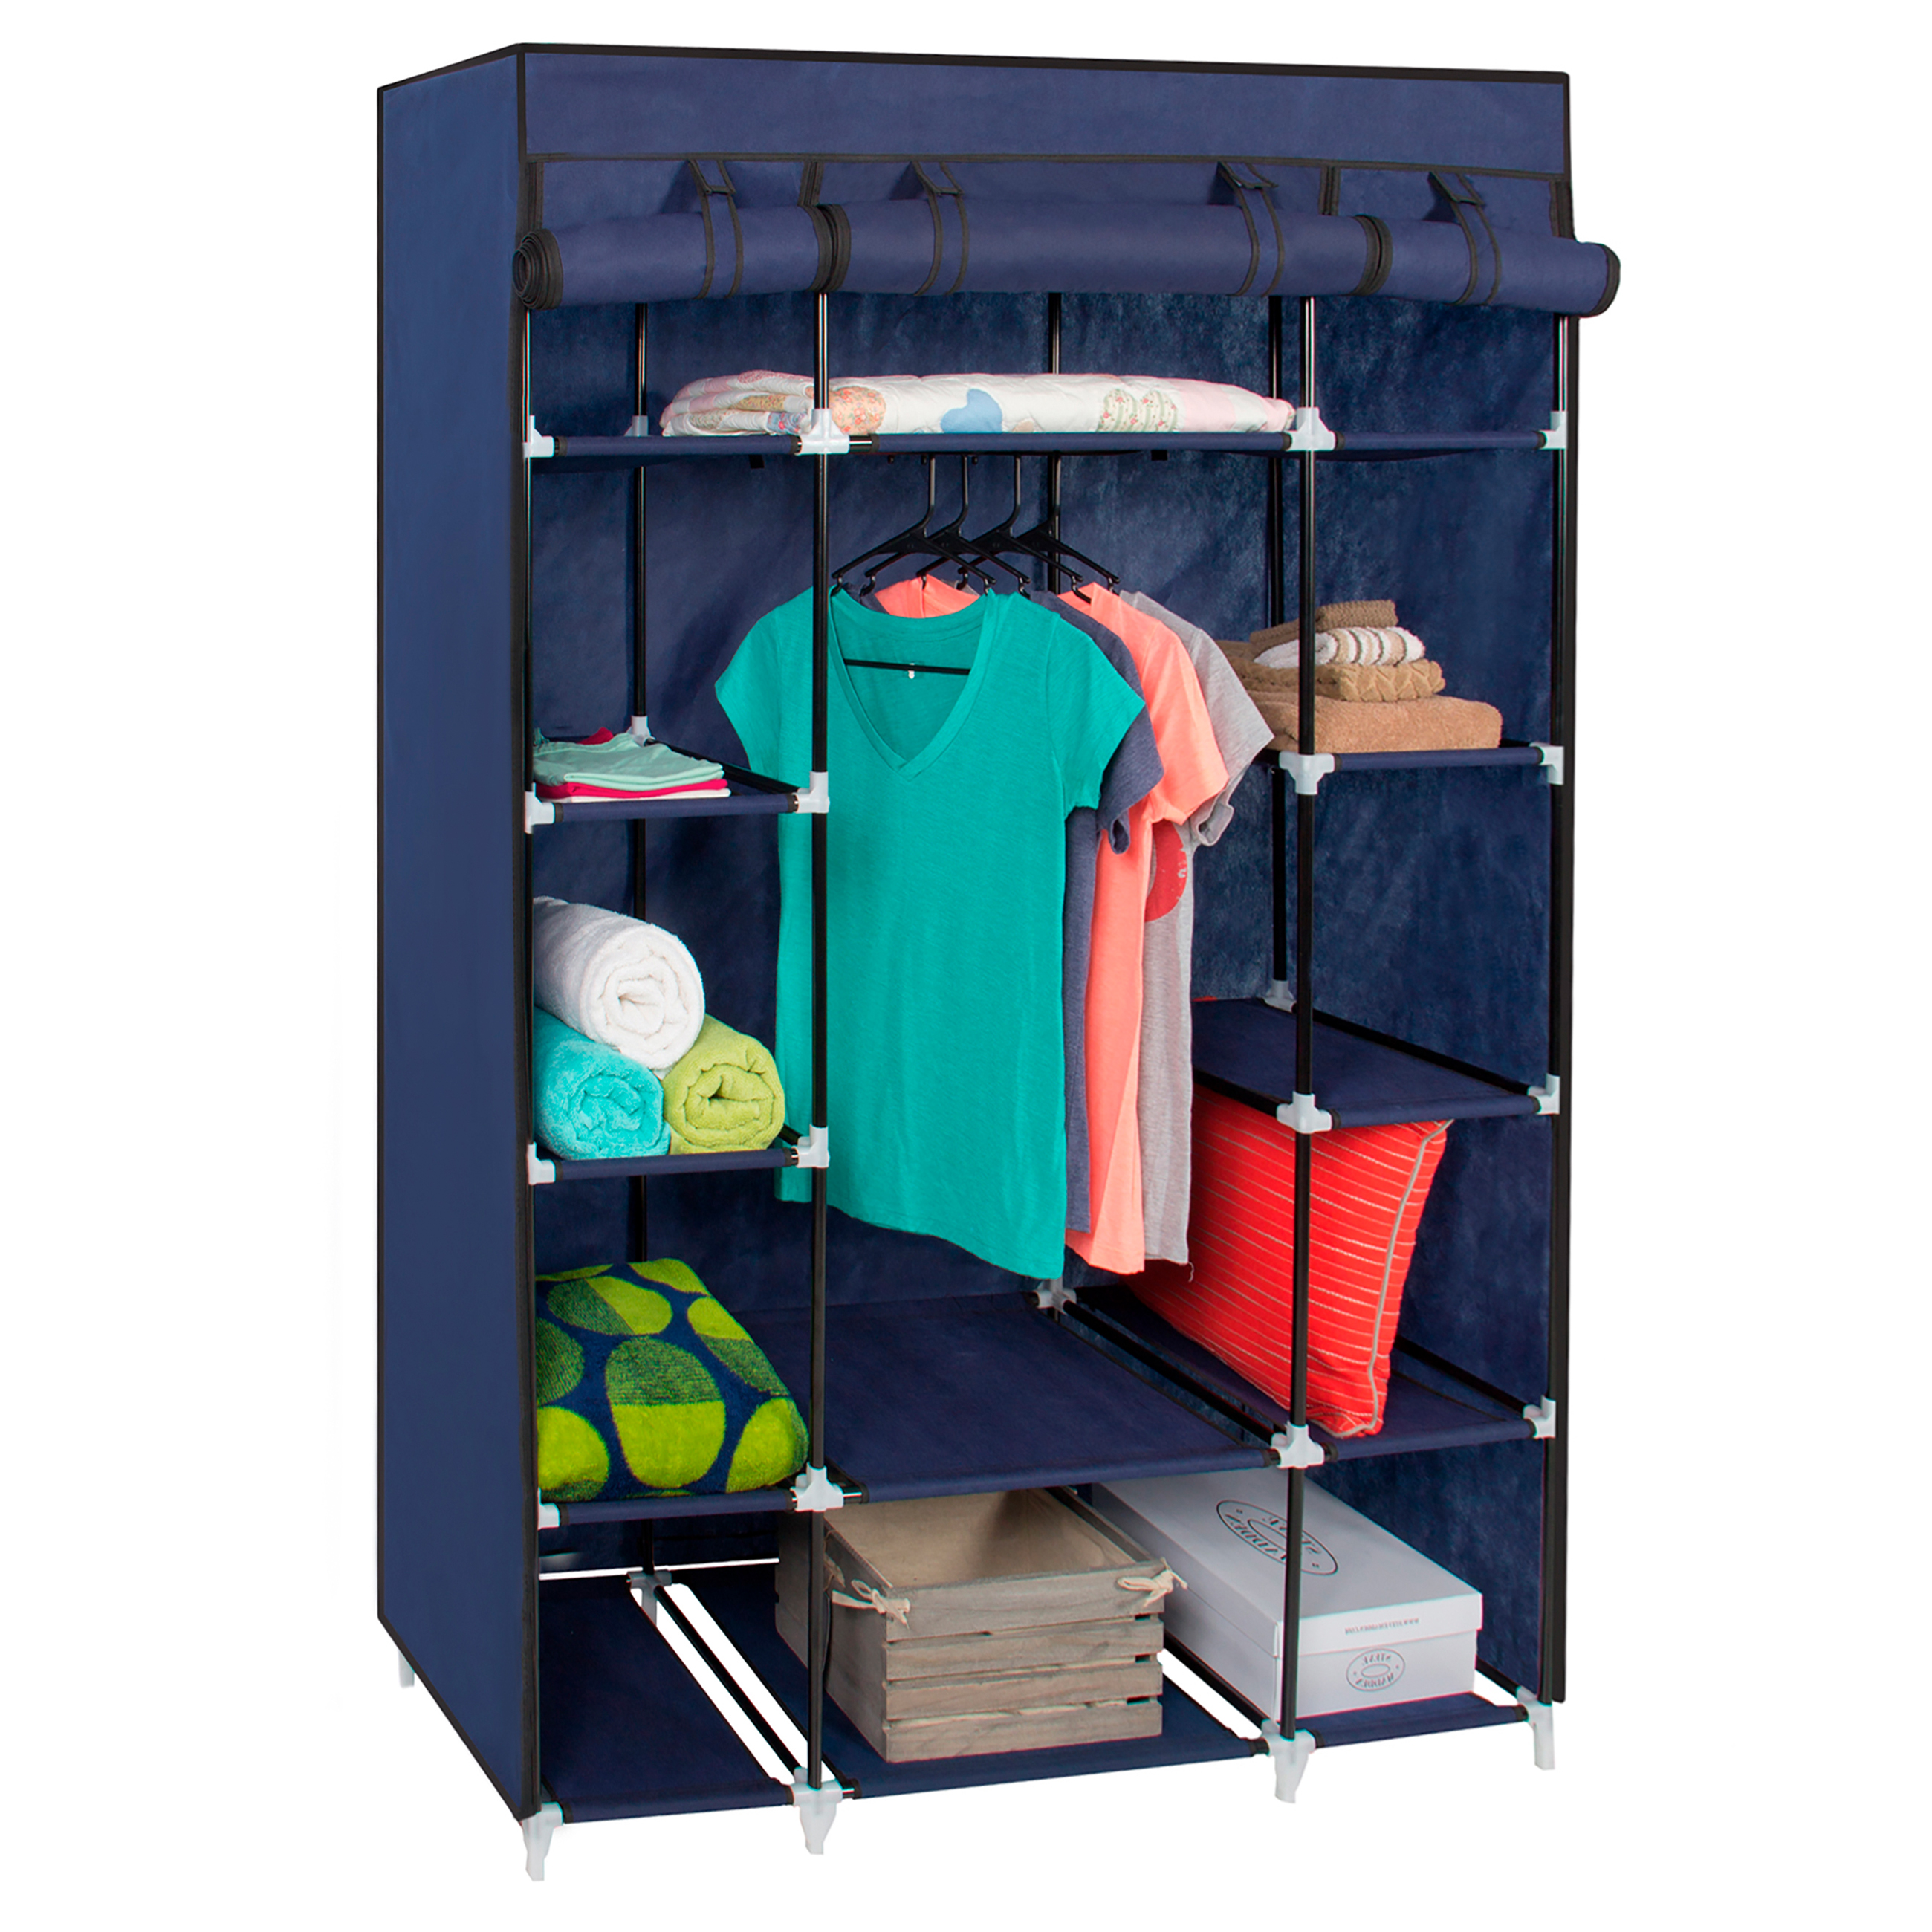 Best Choice Products 13-Shelf Portable Fabric Closet Wardrobe Storage Organizer w/ Cover and Hanging Rod - Blue